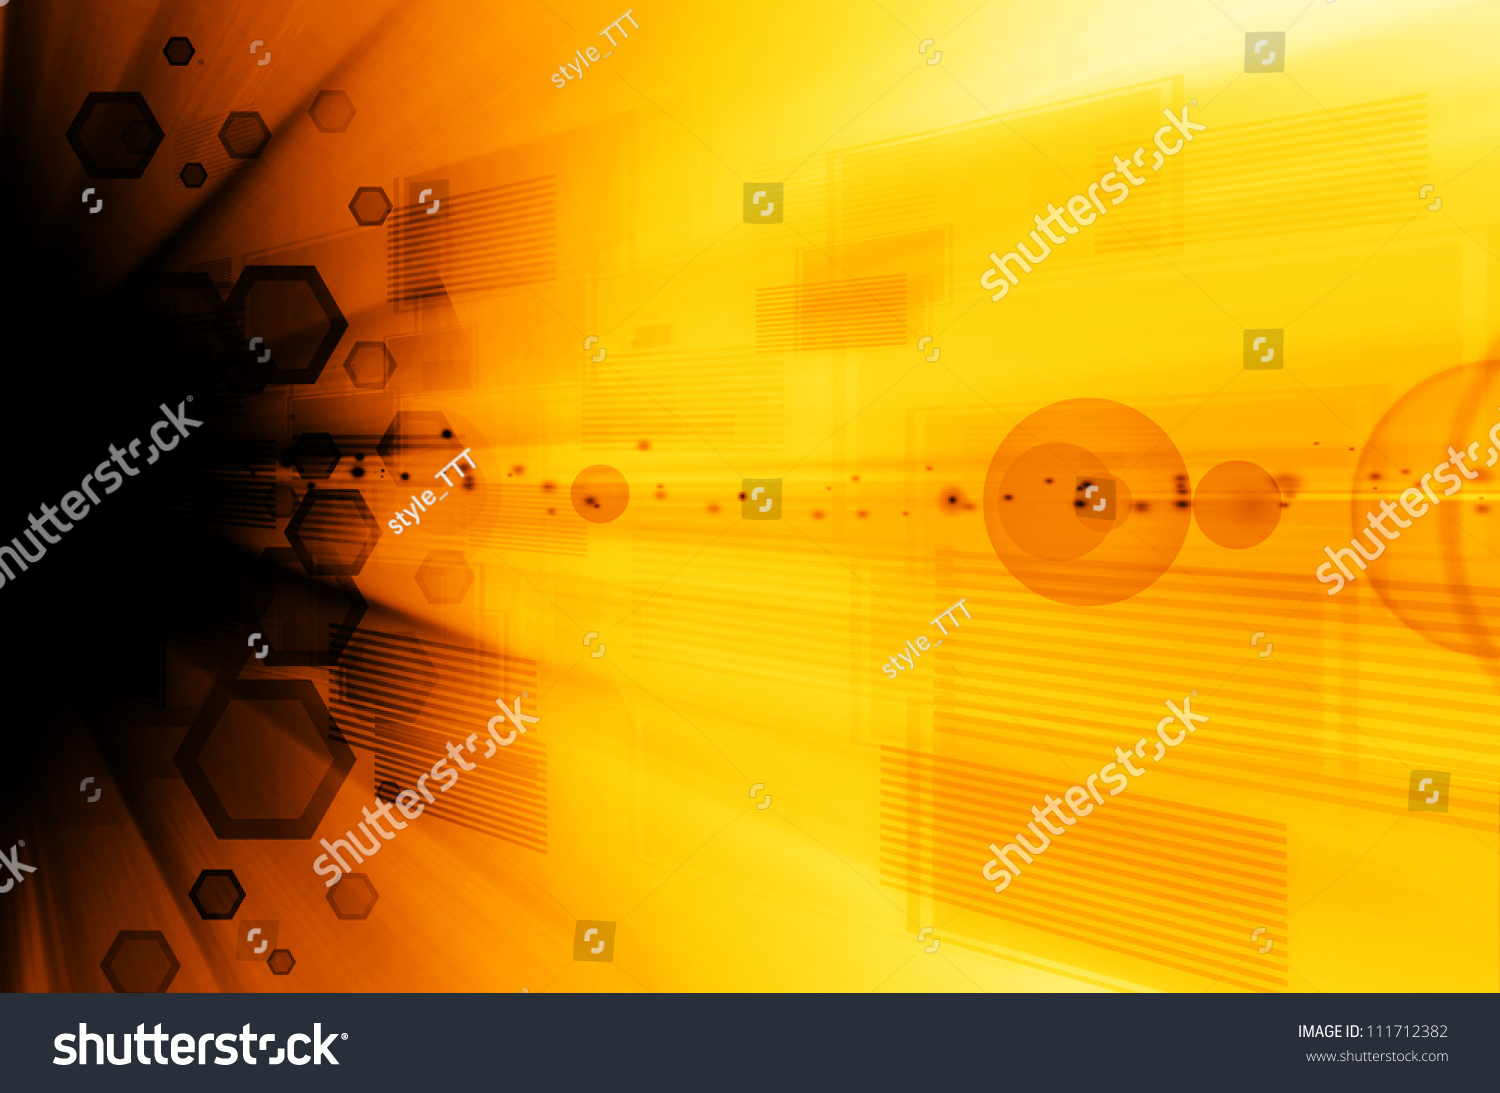 abstract dark yellow technology background stock